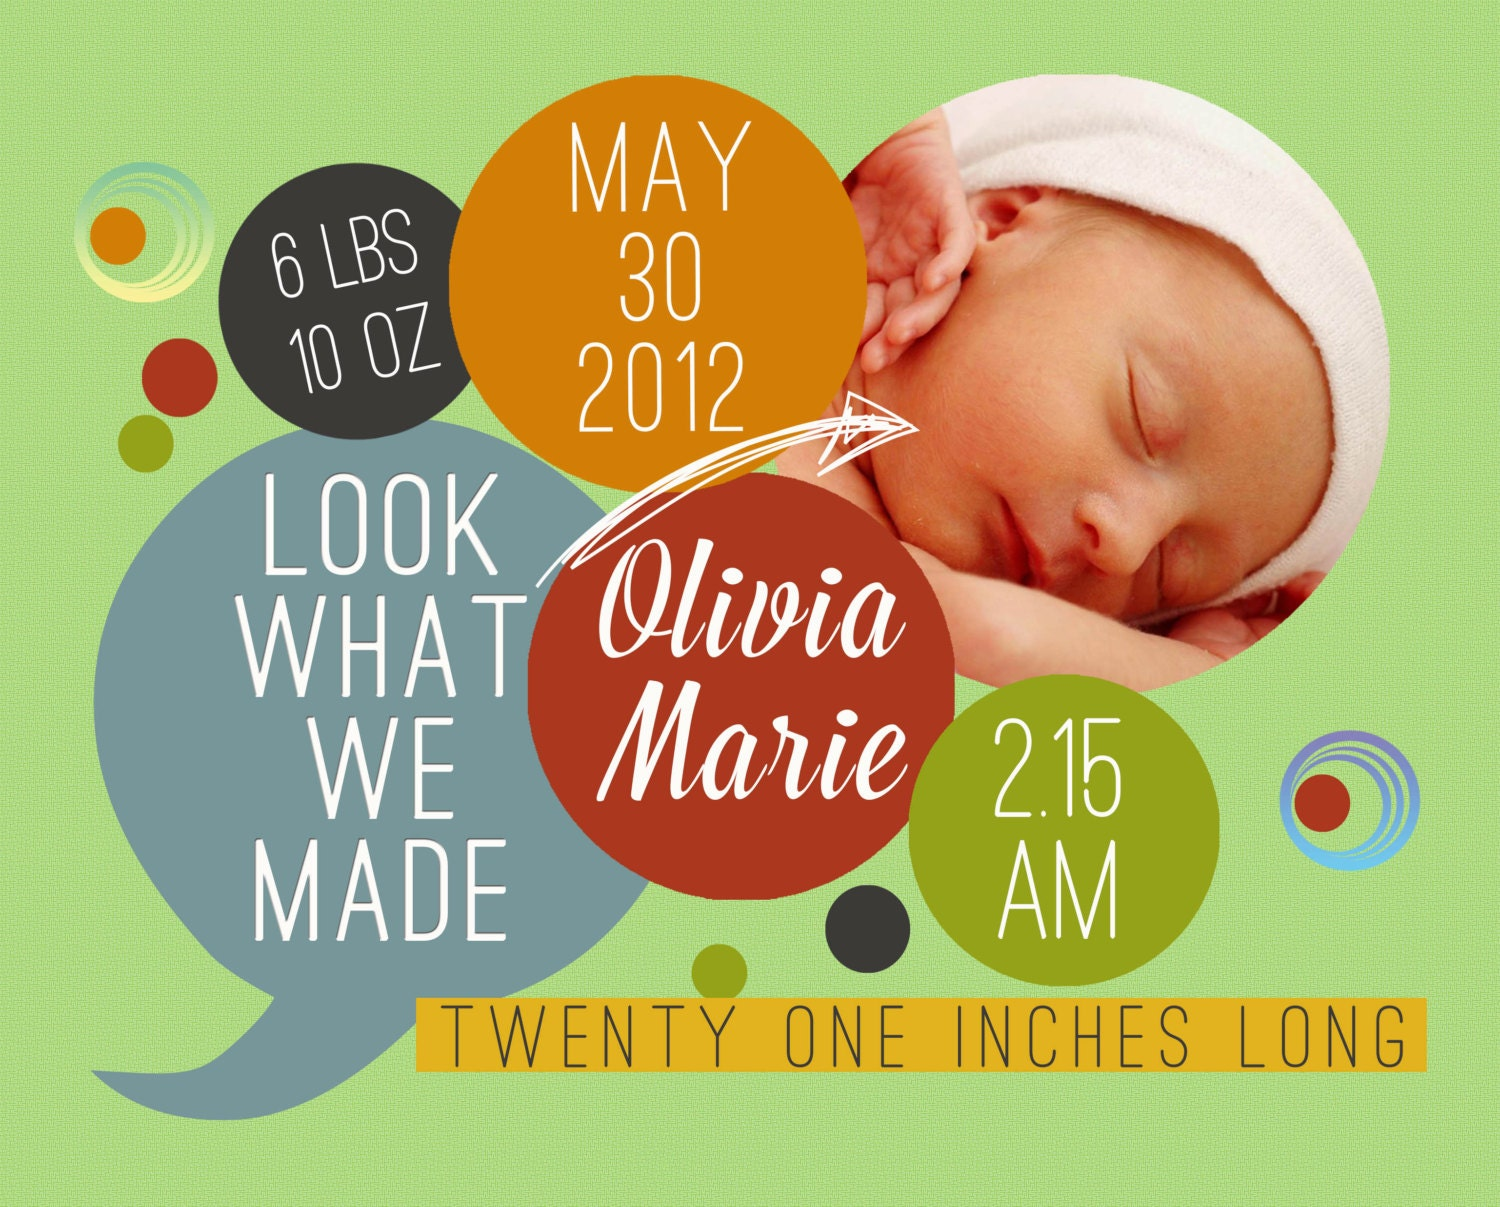 Custom Digital Baby Boy or Baby Girl Photo Birth Announcement, 5x7 PRINTABLE - BA7: Look What We Made